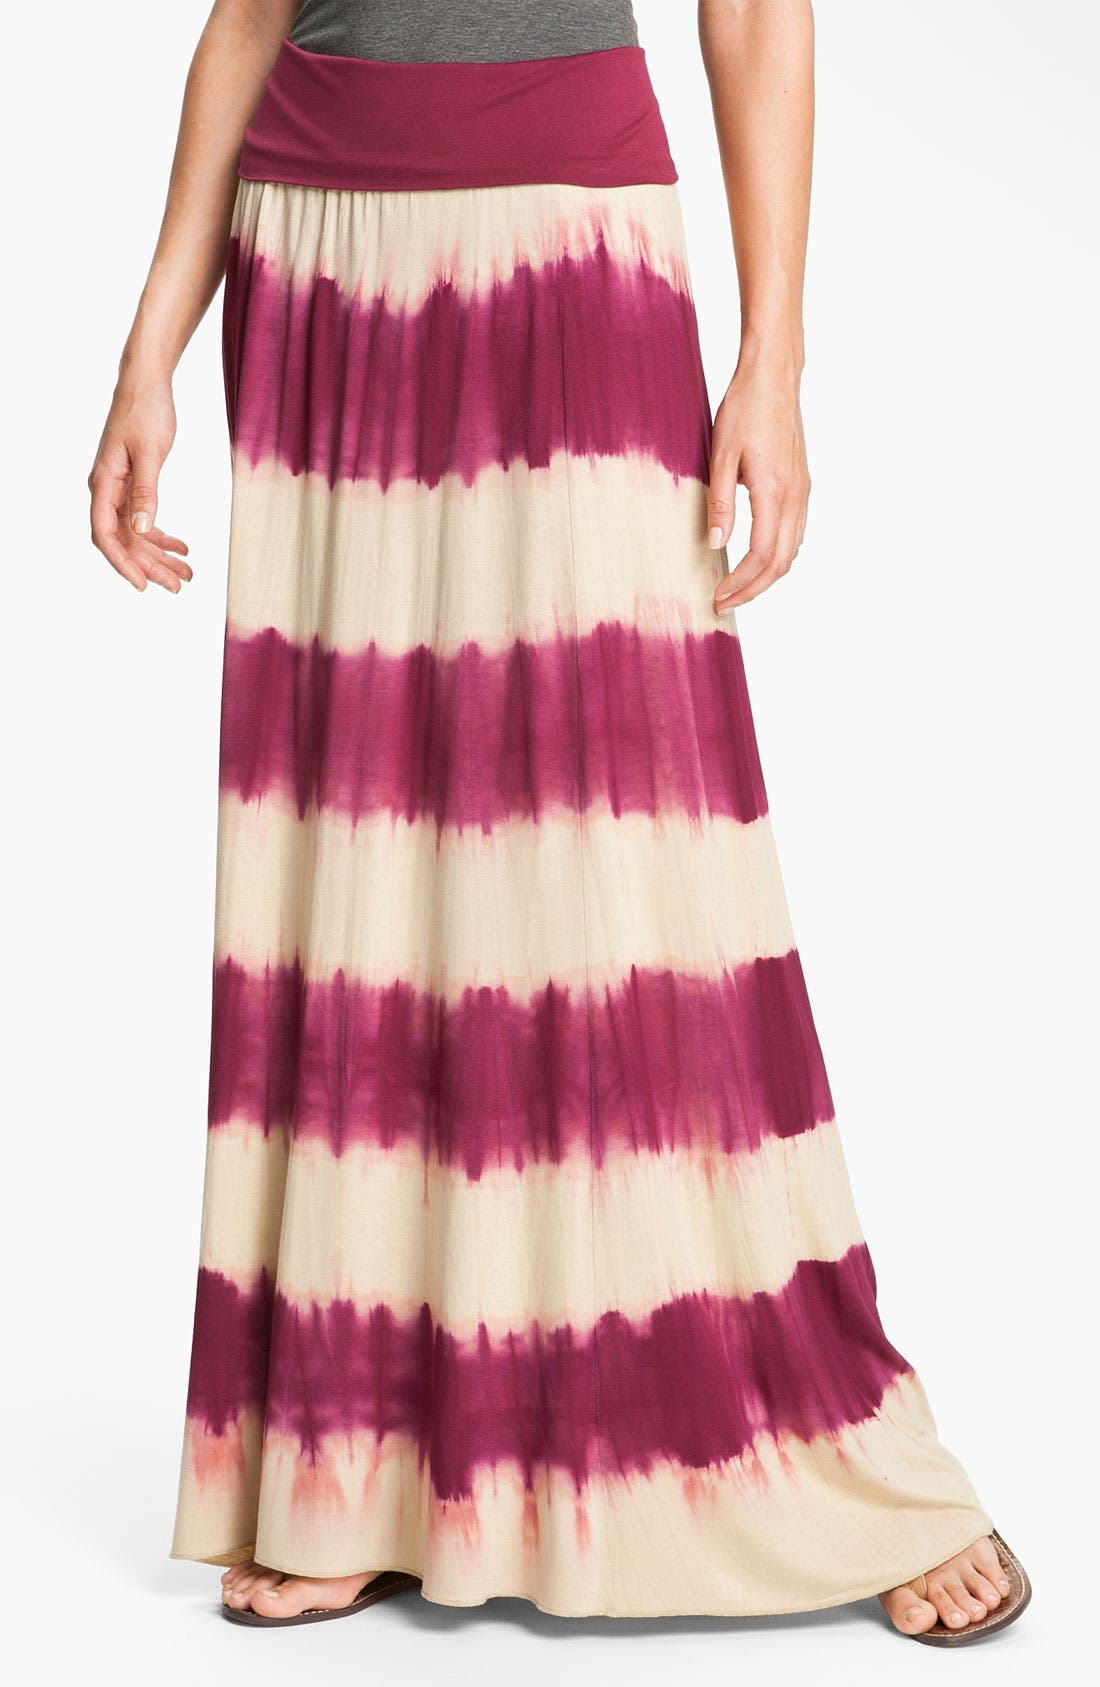 Alternate Image 1 Selected - Max & Mia Tie Dye Maxi Skirt